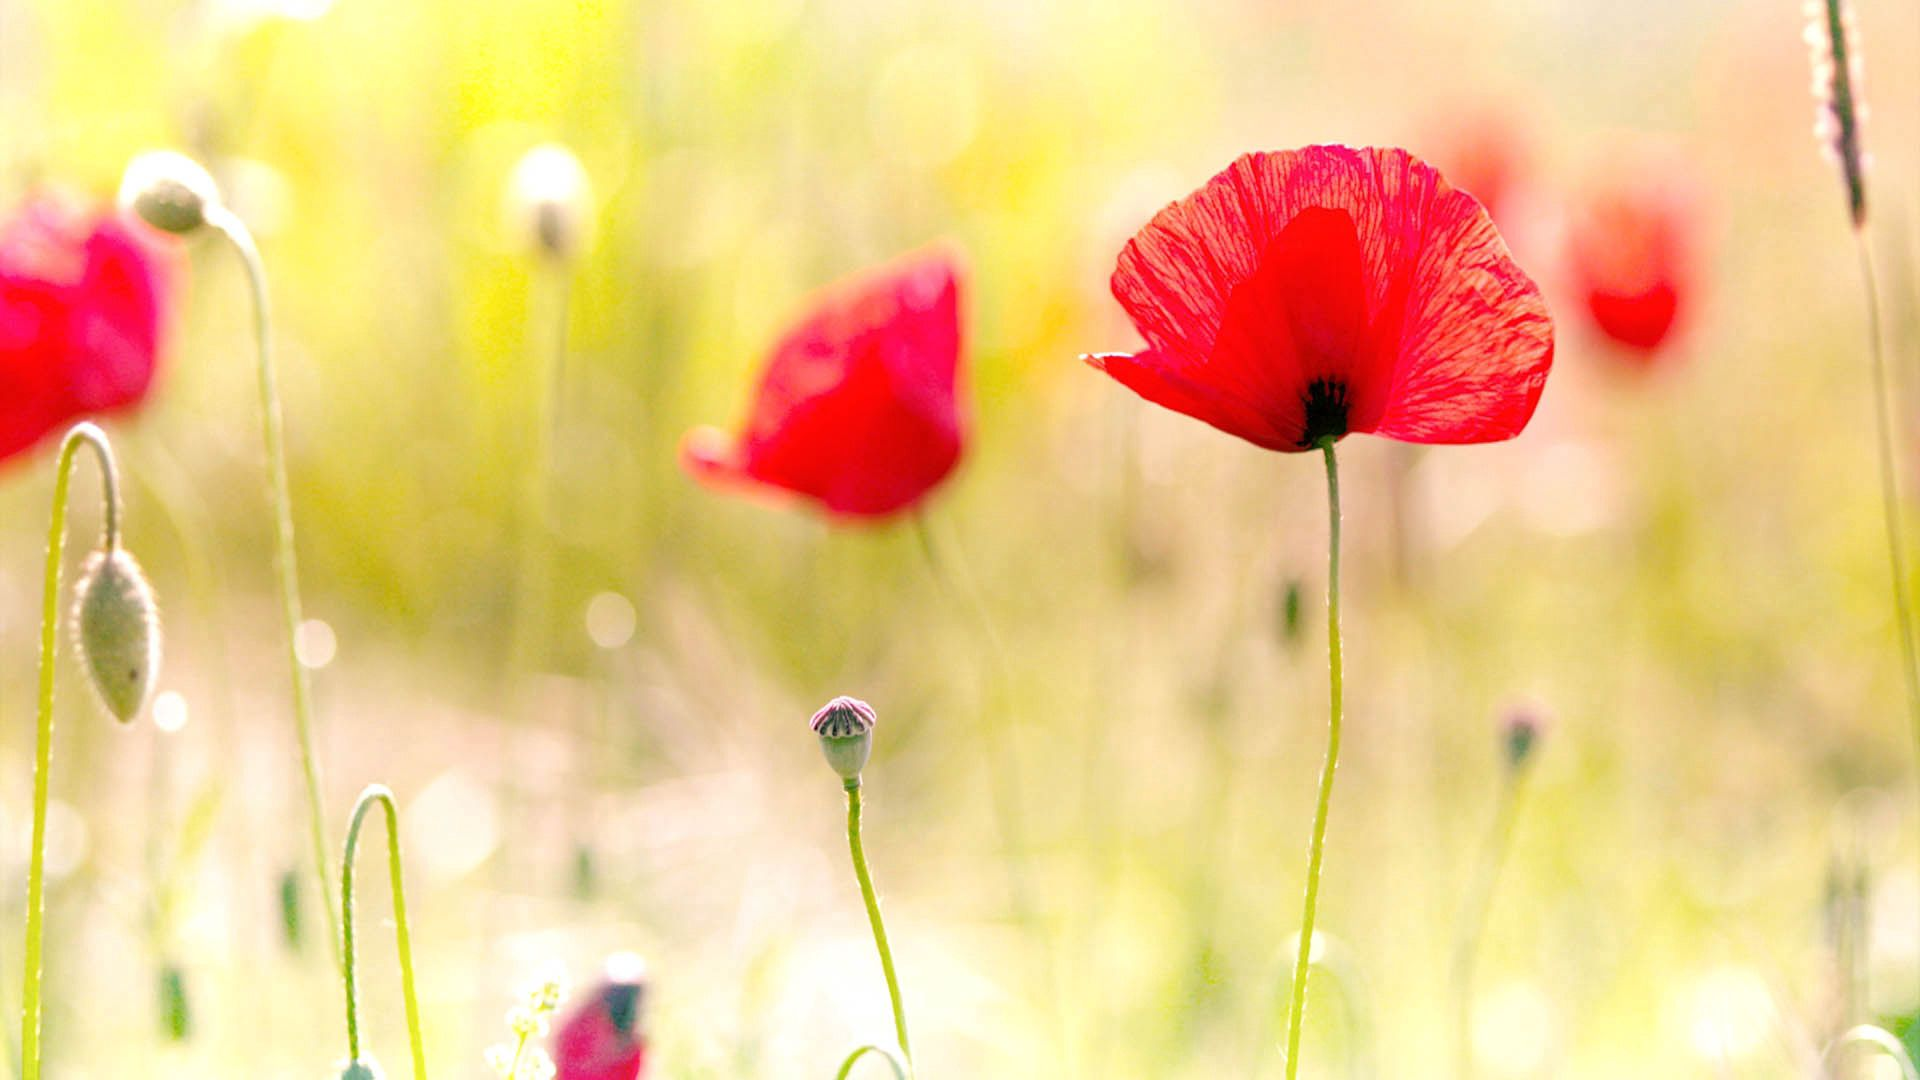 151188 Screensavers and Wallpapers Poppies for phone. Download Flowers, Poppies, Plant, Shine, Light, Petals, Field pictures for free